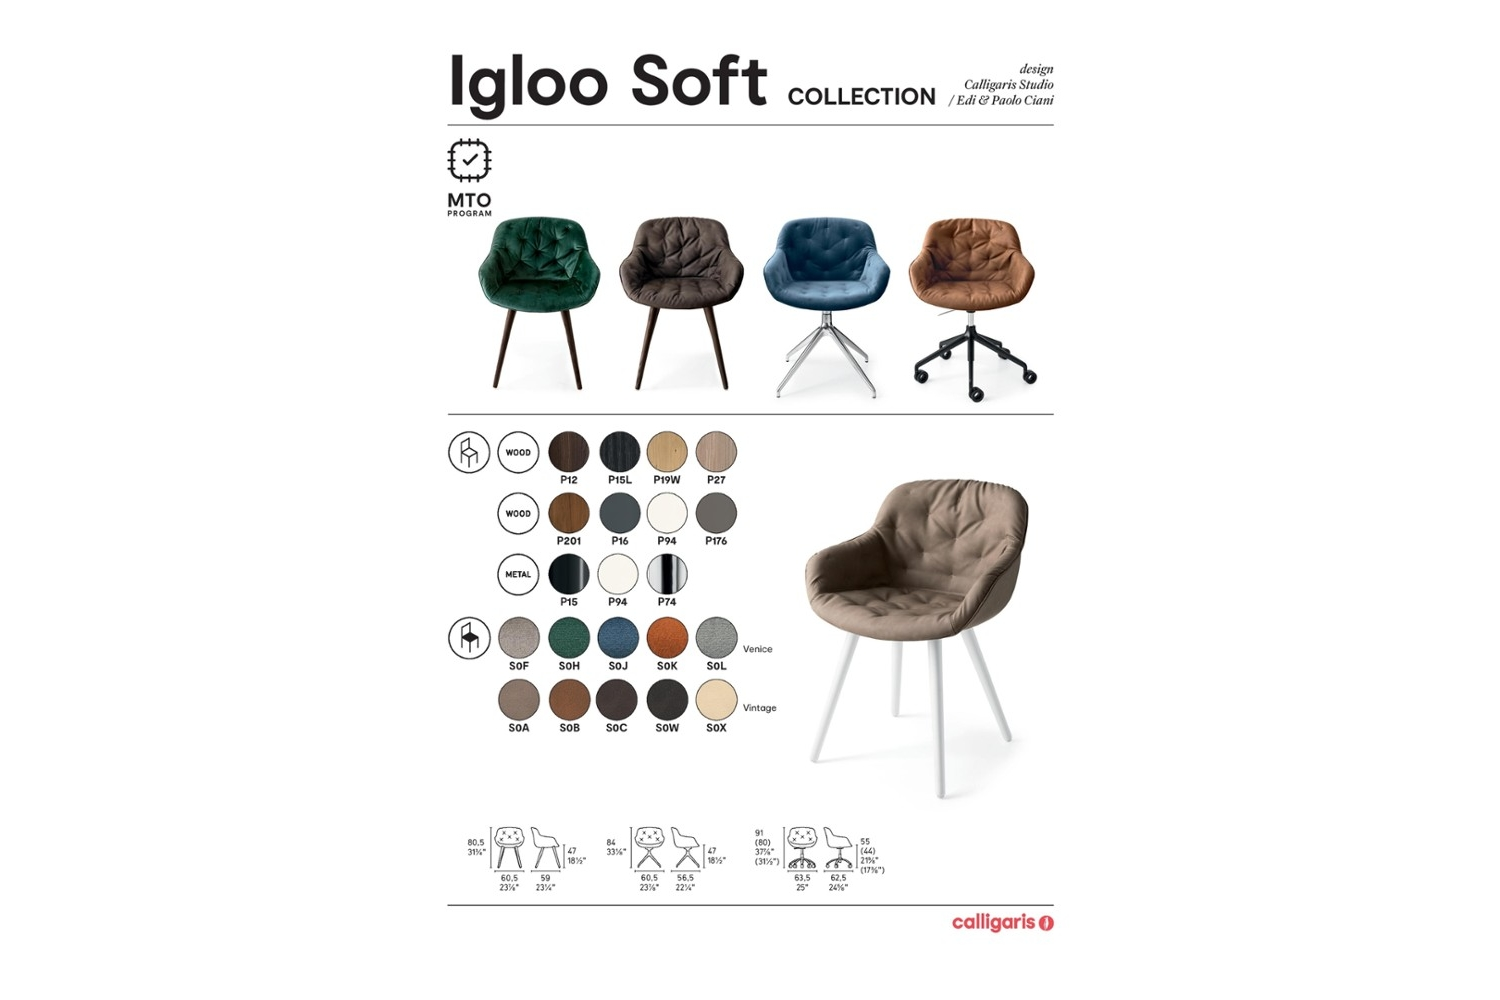 Schematic Igloo Soft Collection 2019 page 001 Schematic Igloo_Soft_Collection_2019-page-001.jpg Calligaris Schematic